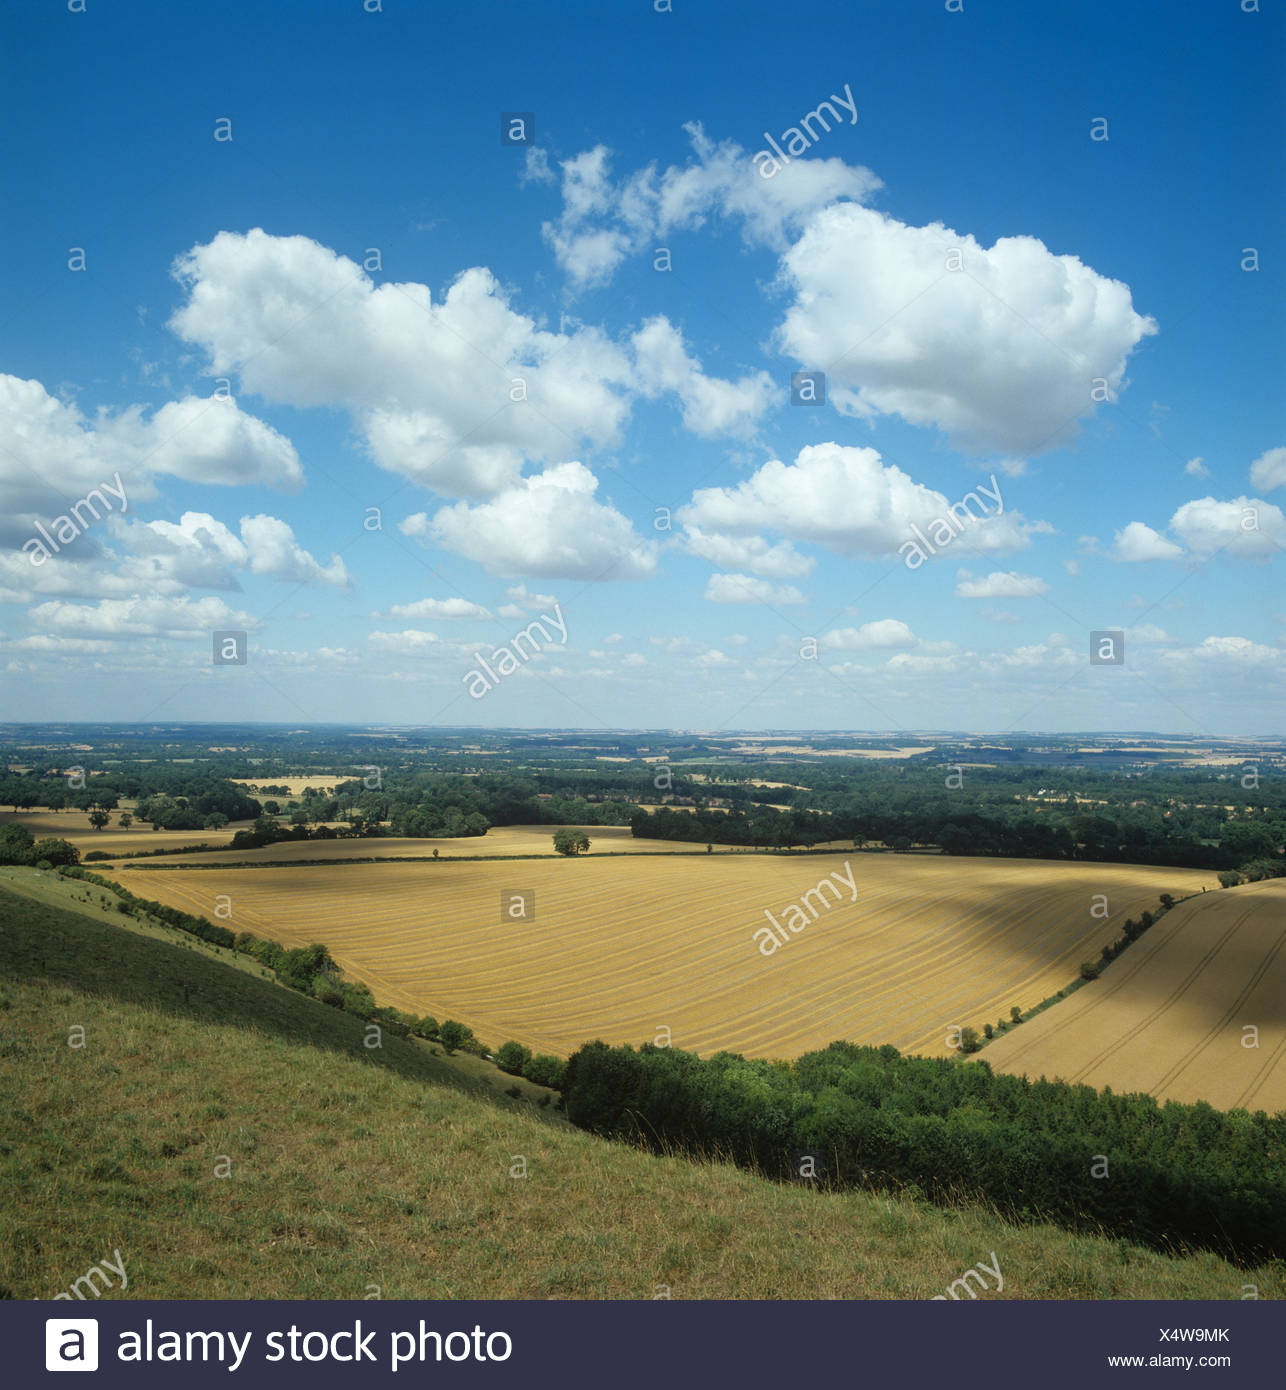 High downland view of ripe cereal fields near Inkpen in Berkshire on a fine summer day - Stock Image